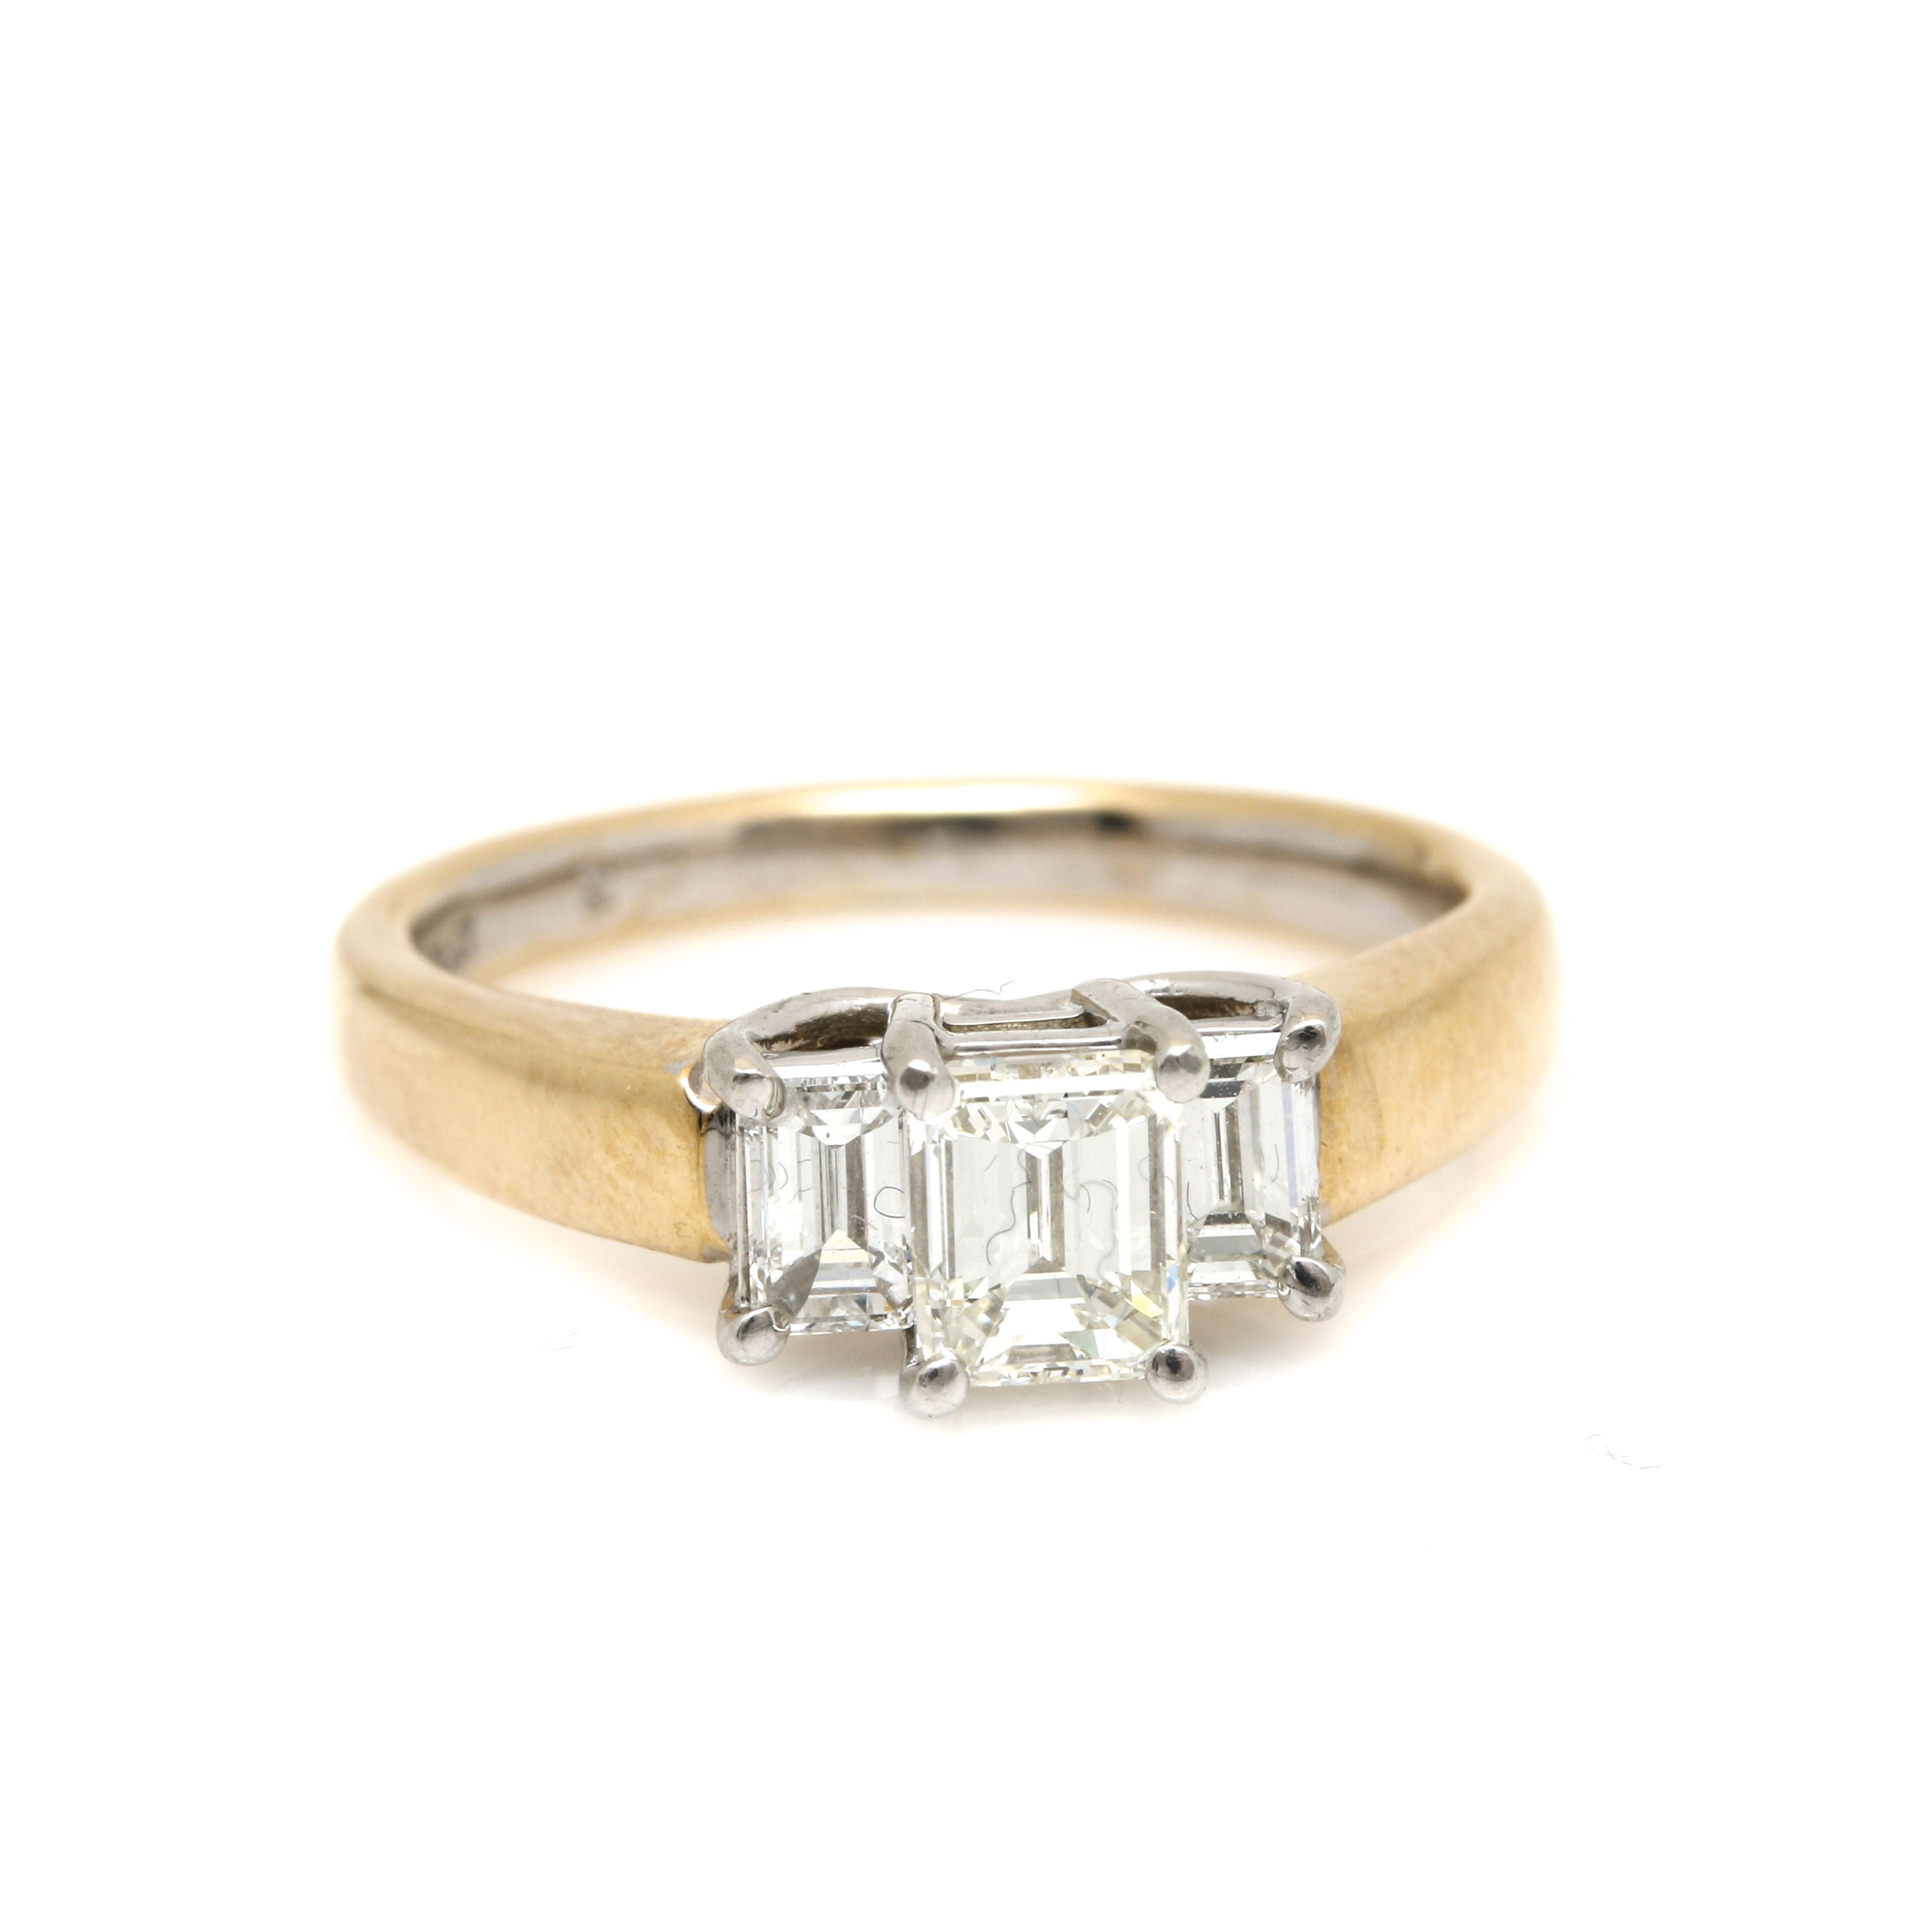 14K Yellow Gold and Platinum 0.96 CTW Diamond Ring